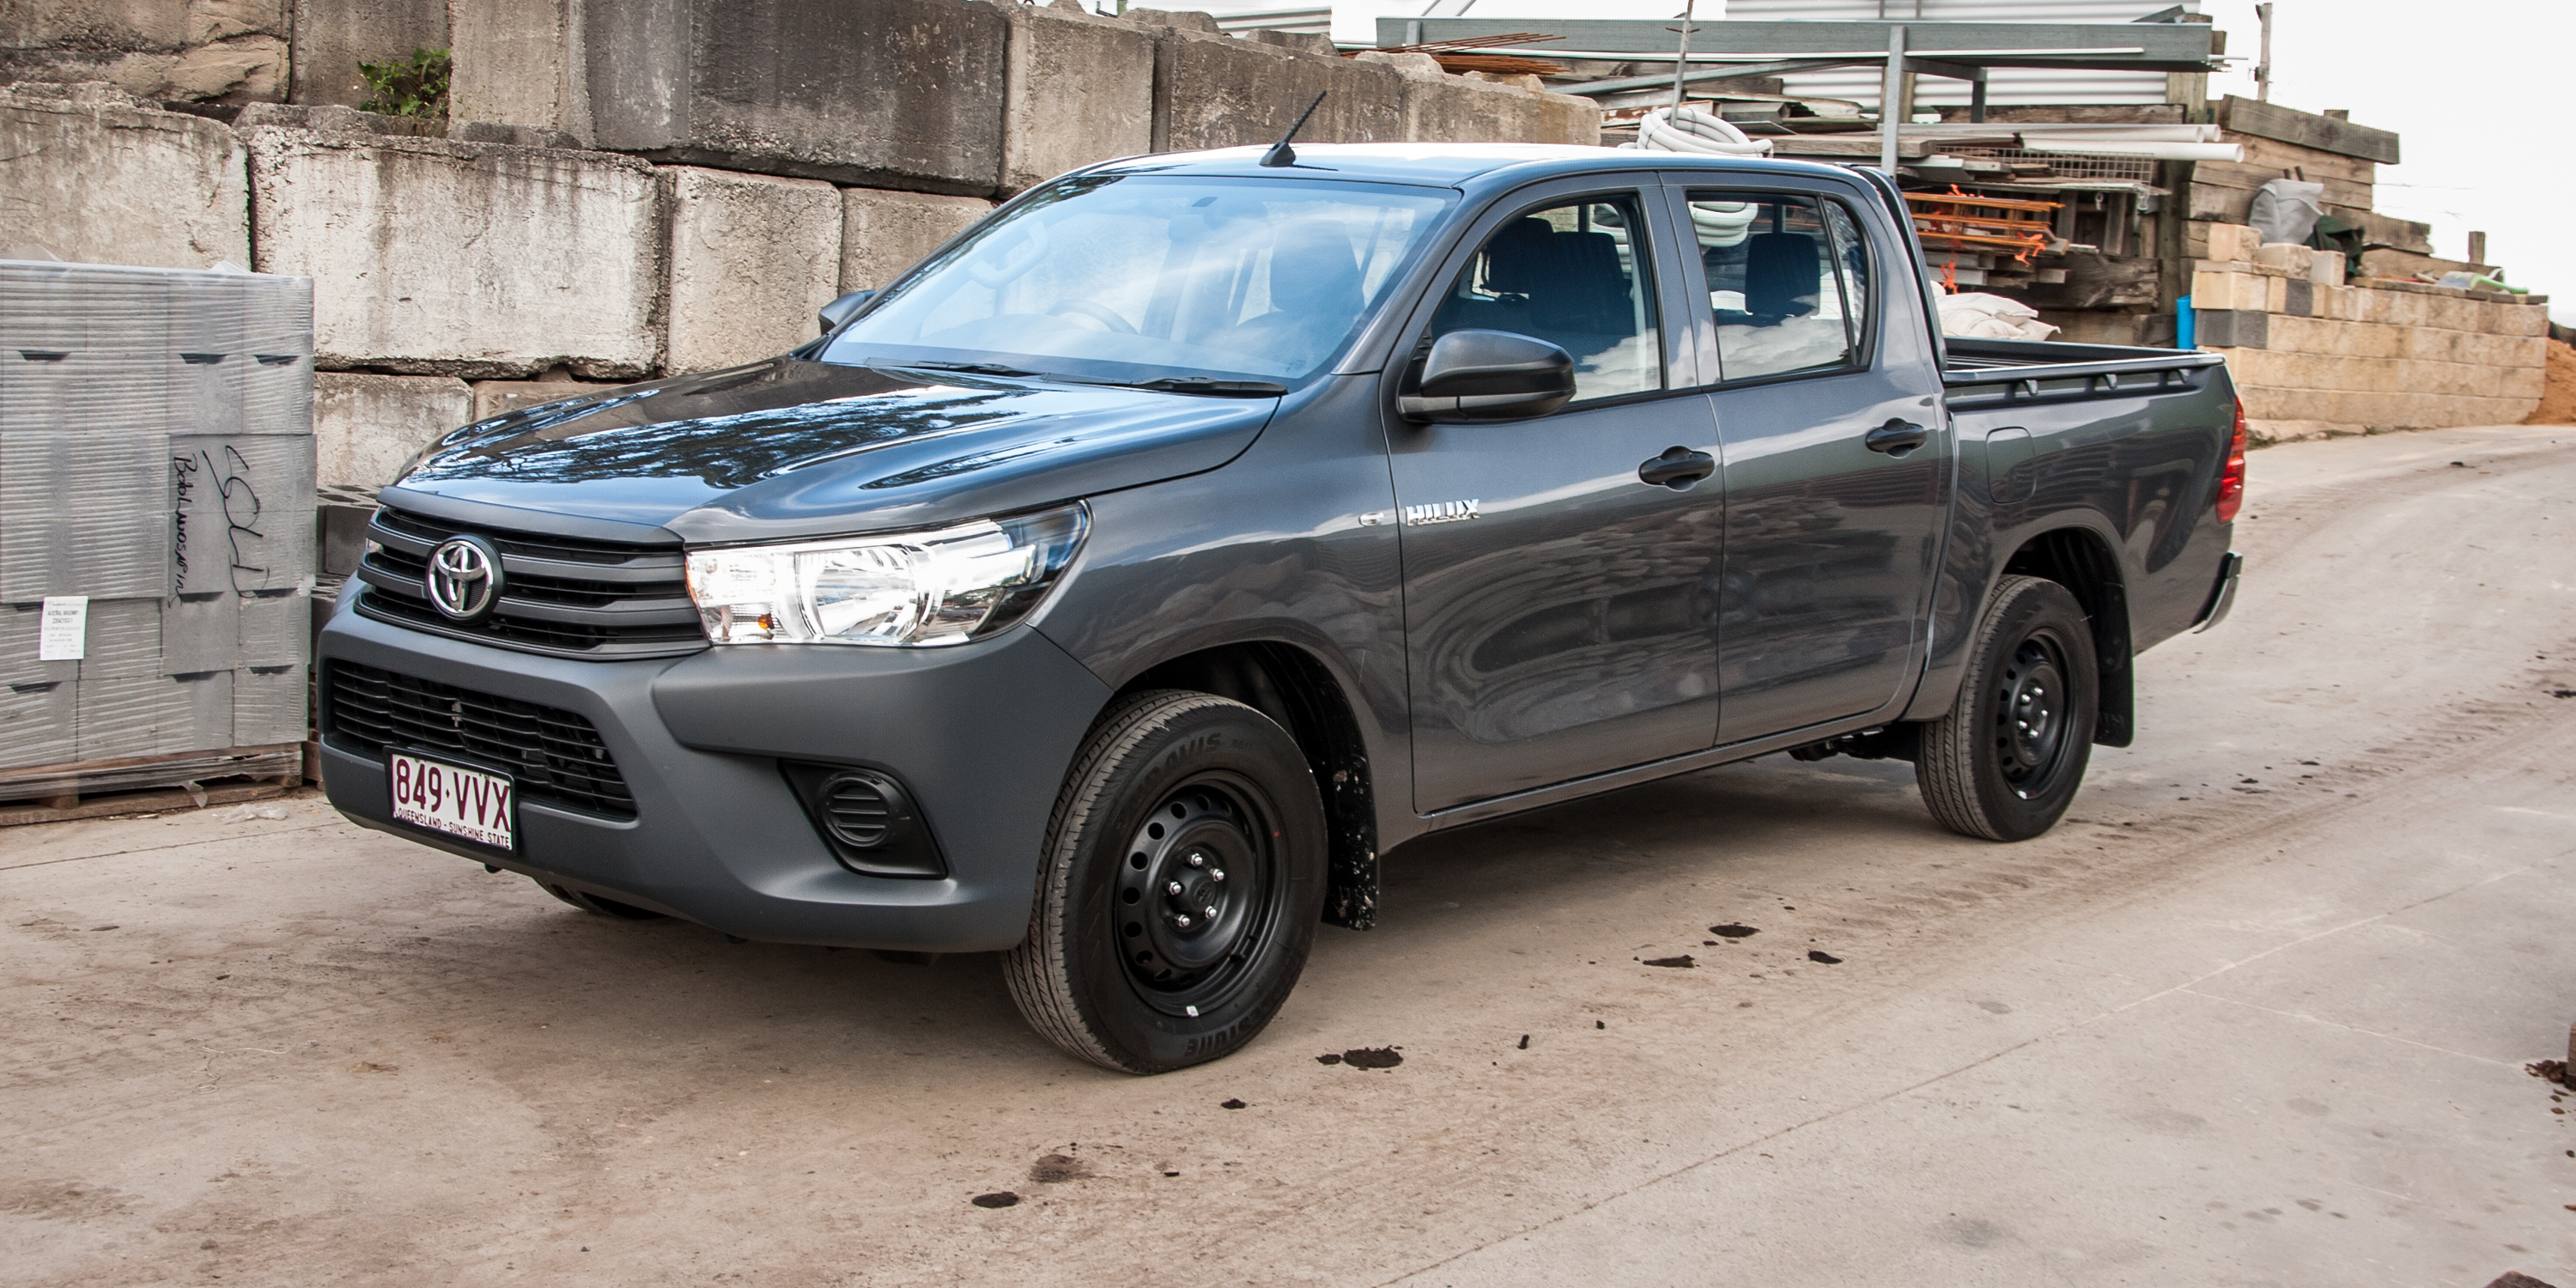 2016 Toyota Hilux Workmate 4x2 Double Cab Review Photos